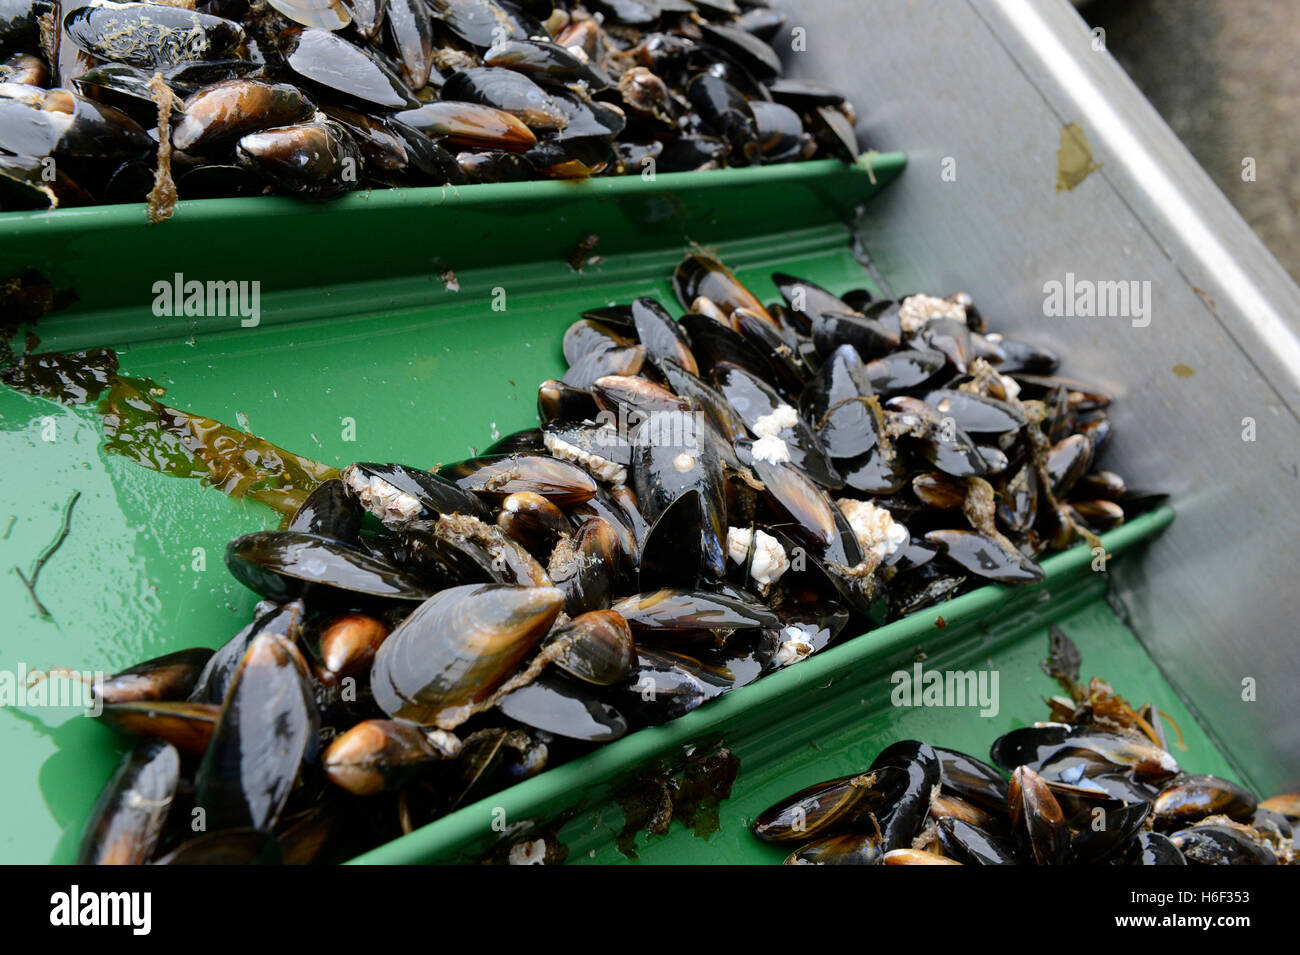 Sea grown mussels grown of the west side of Shetland Scotland being harvested for packing. - Stock Image